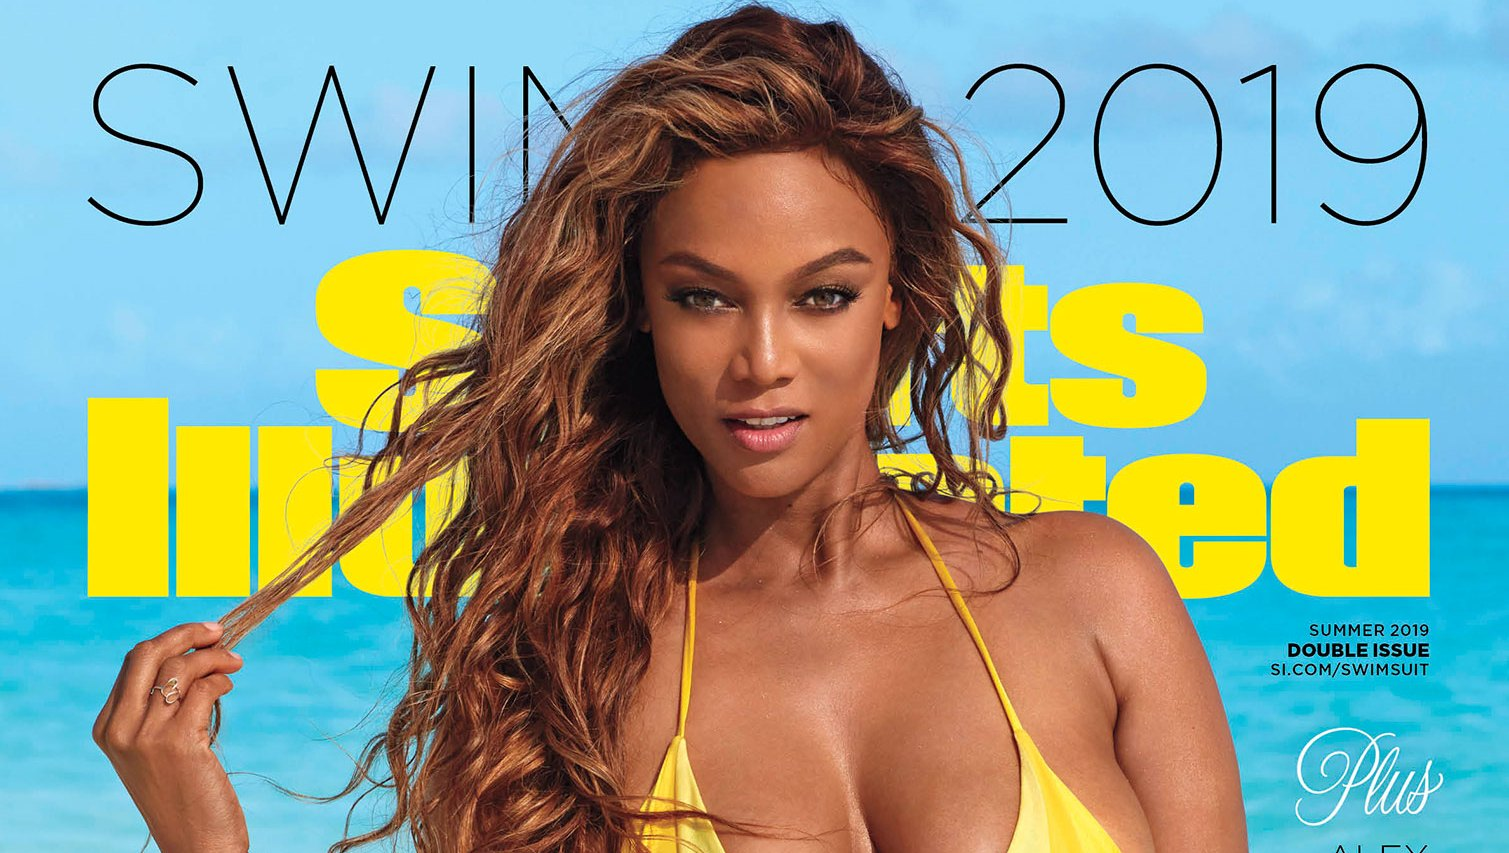 45-Year-Old Tyra Banks Revealed as 'Sports Illustrated Swim' Issue Cover Model